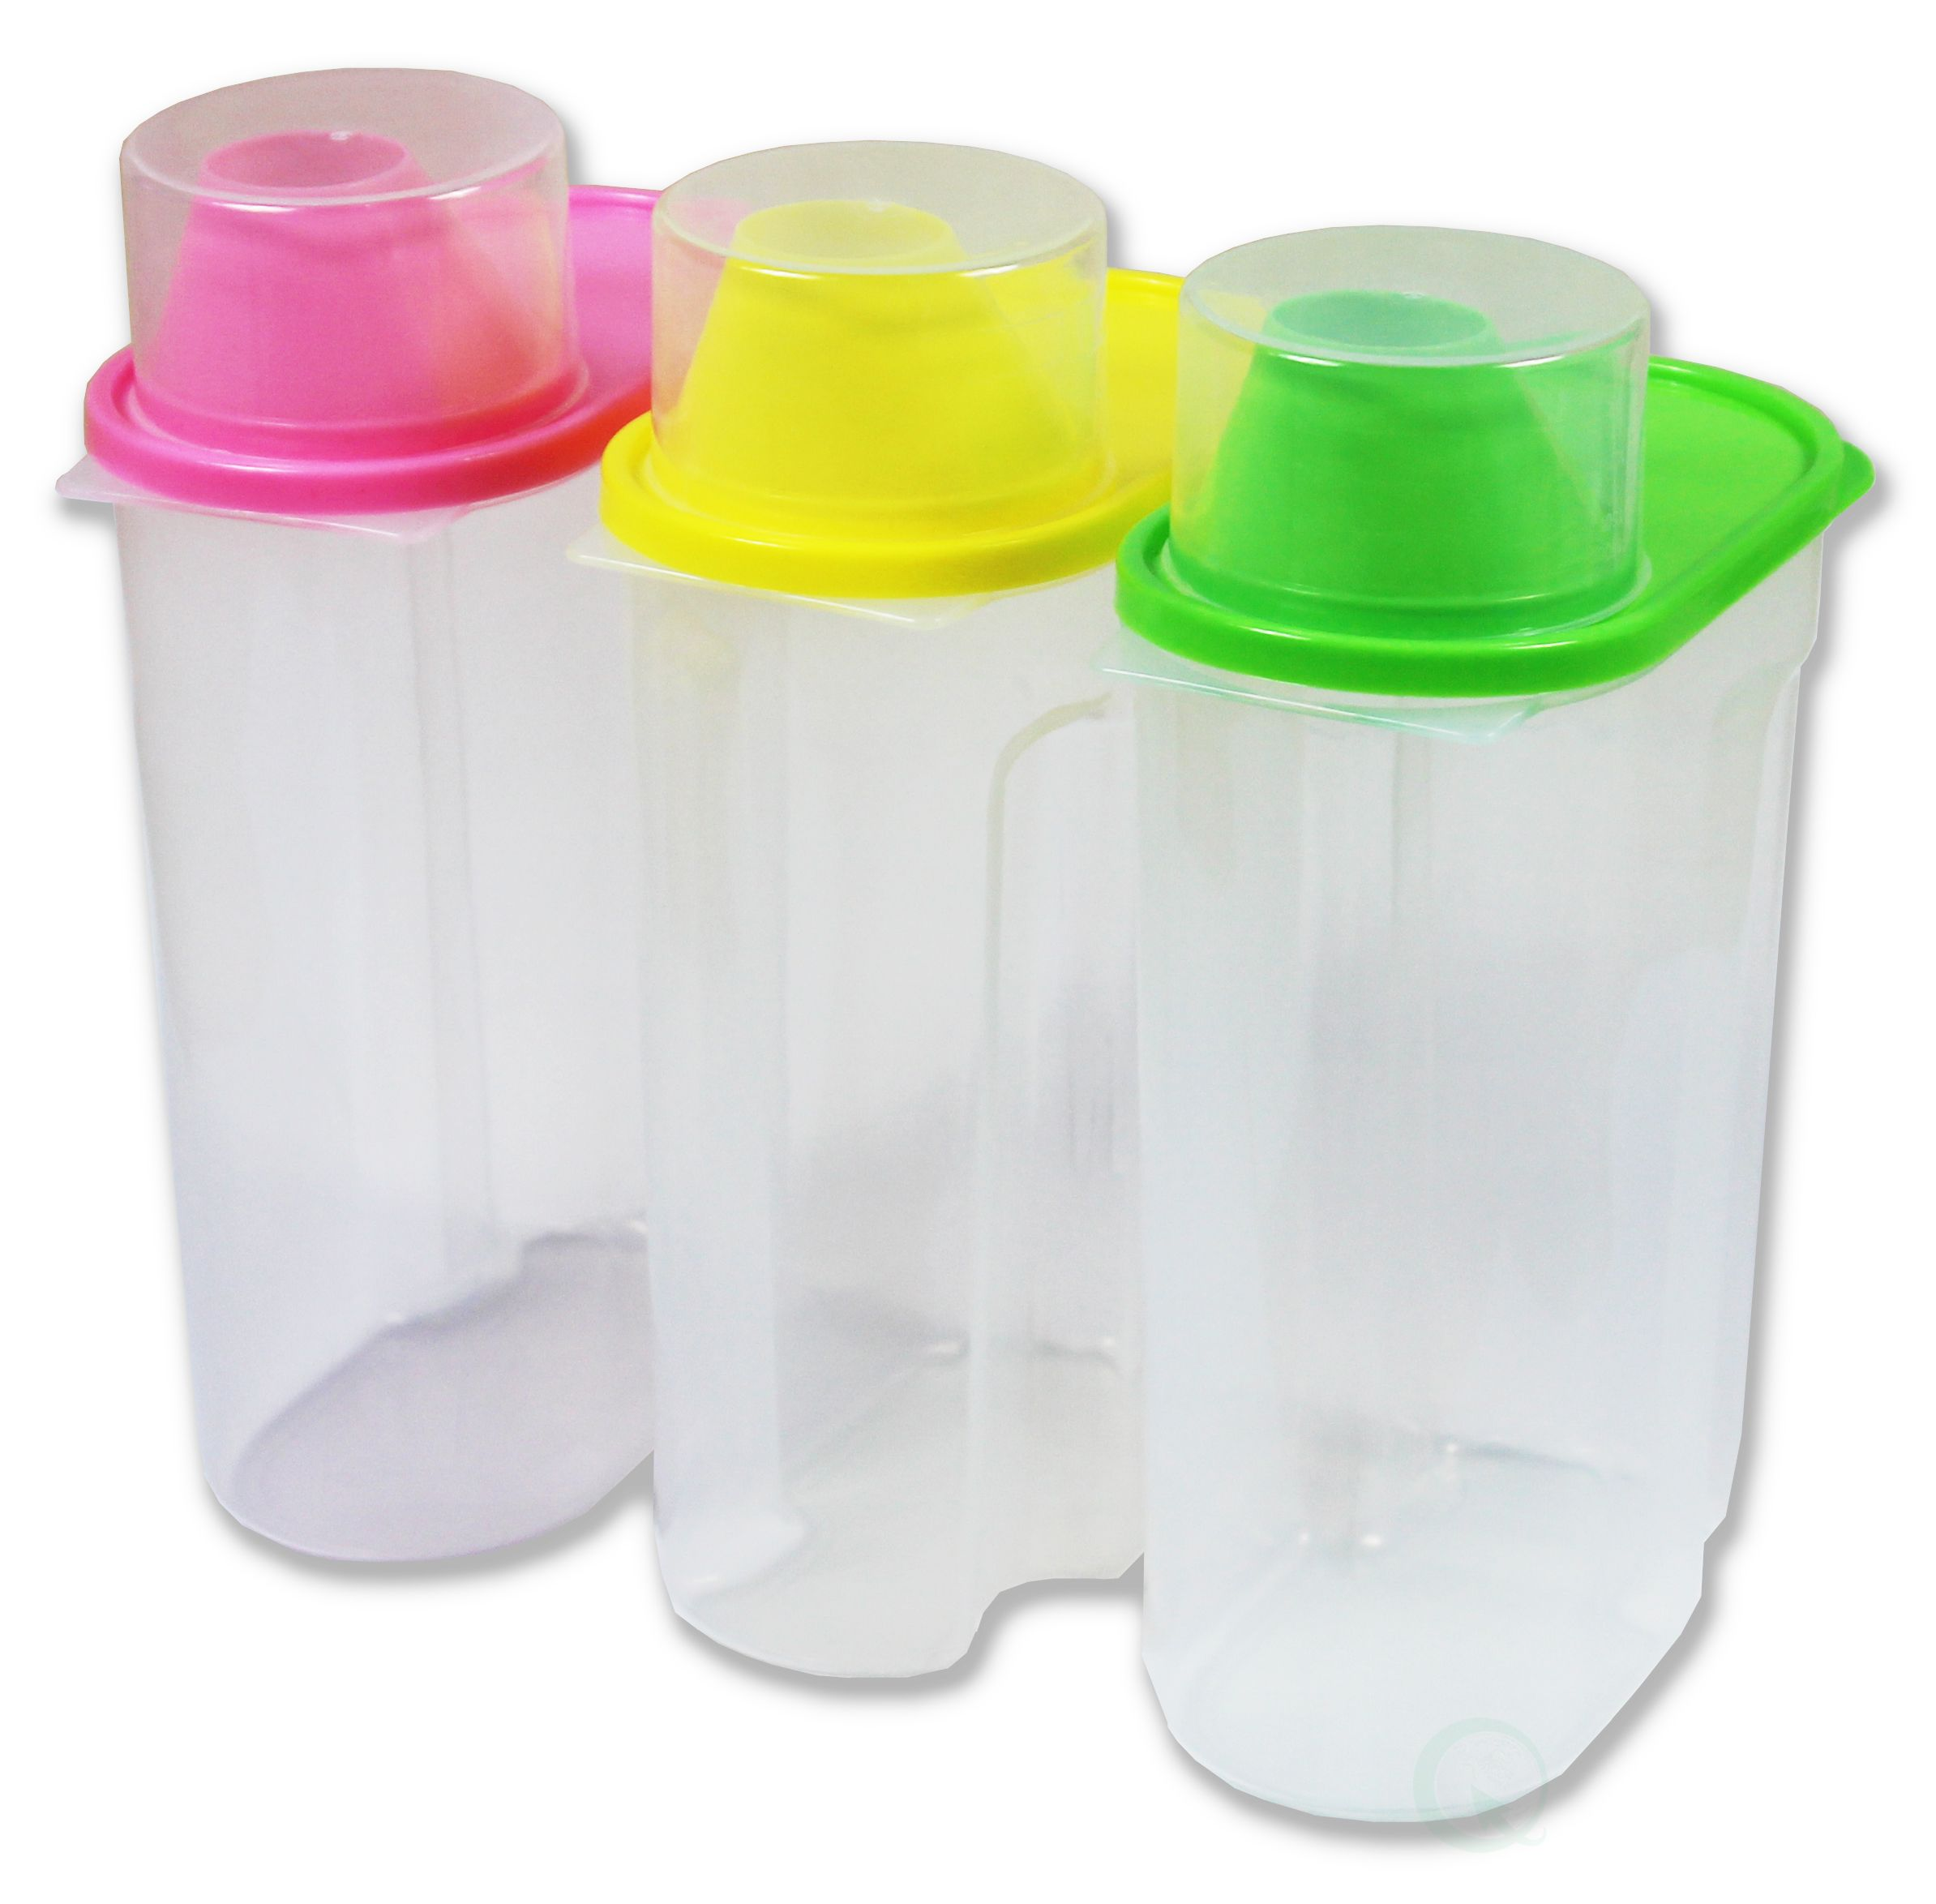 BPA Free Plastic Food Saver Kitchen Food Cereal Storage Containers